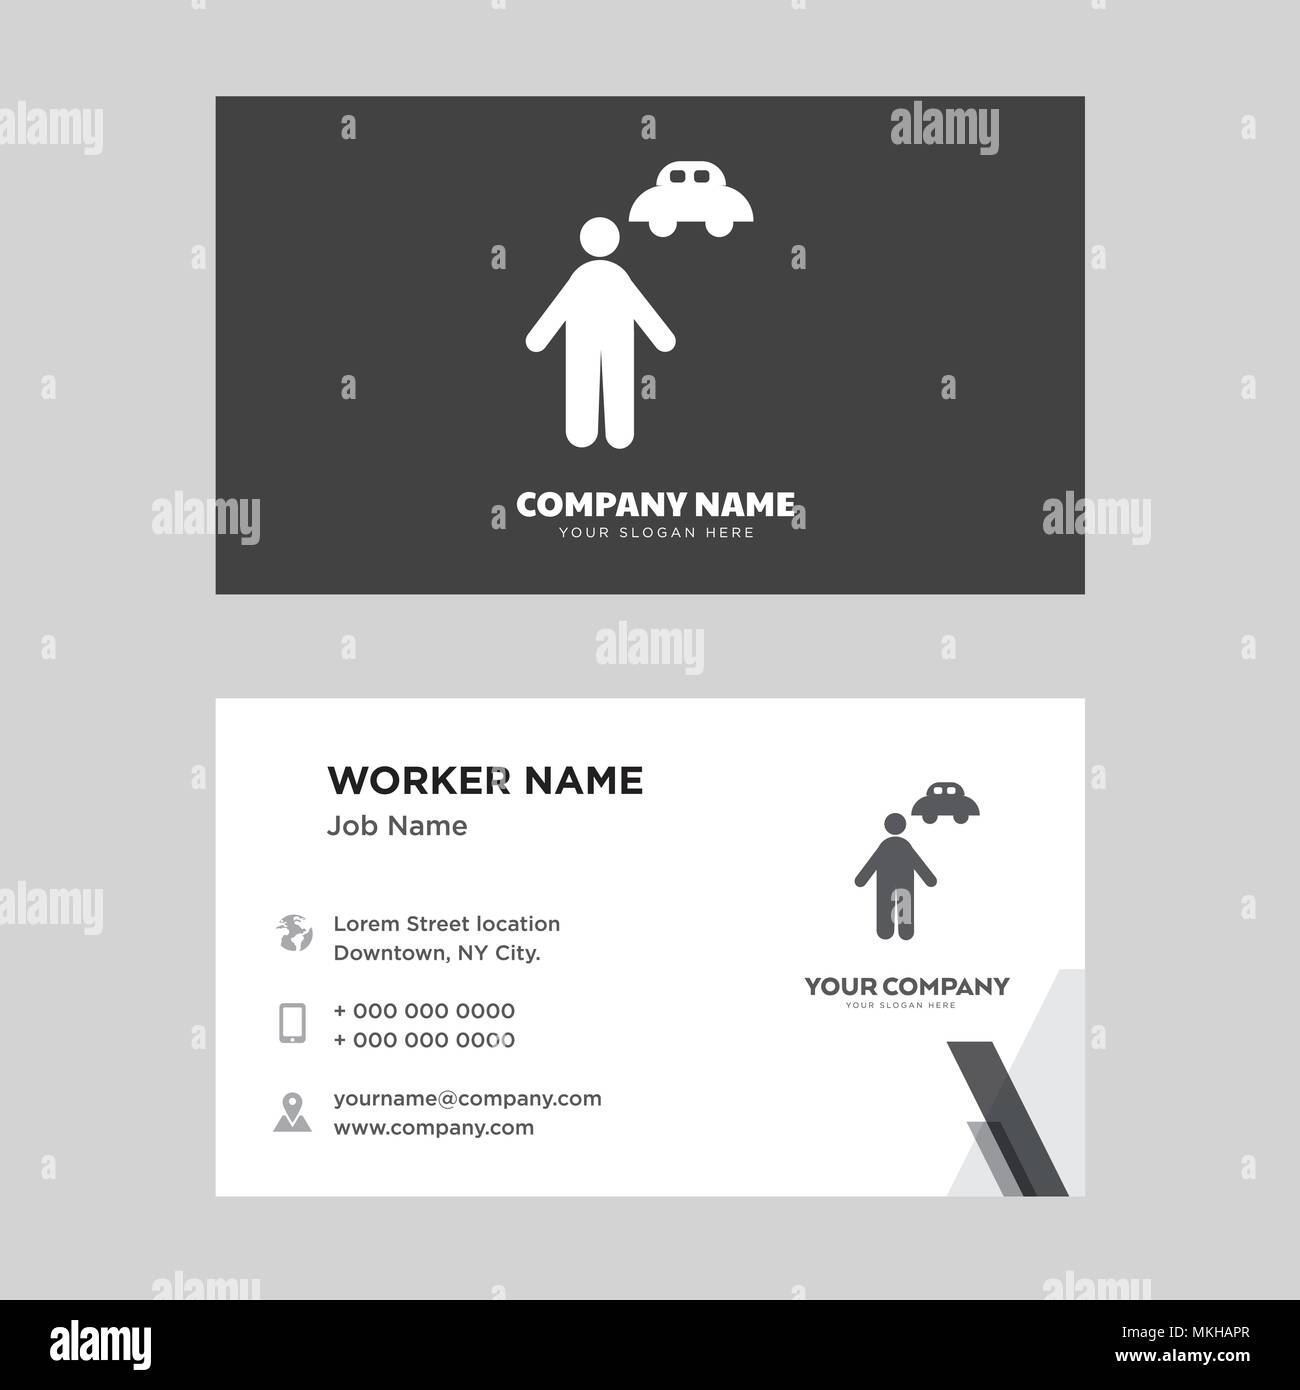 Chauffeur business card design template, Visiting for your company ...